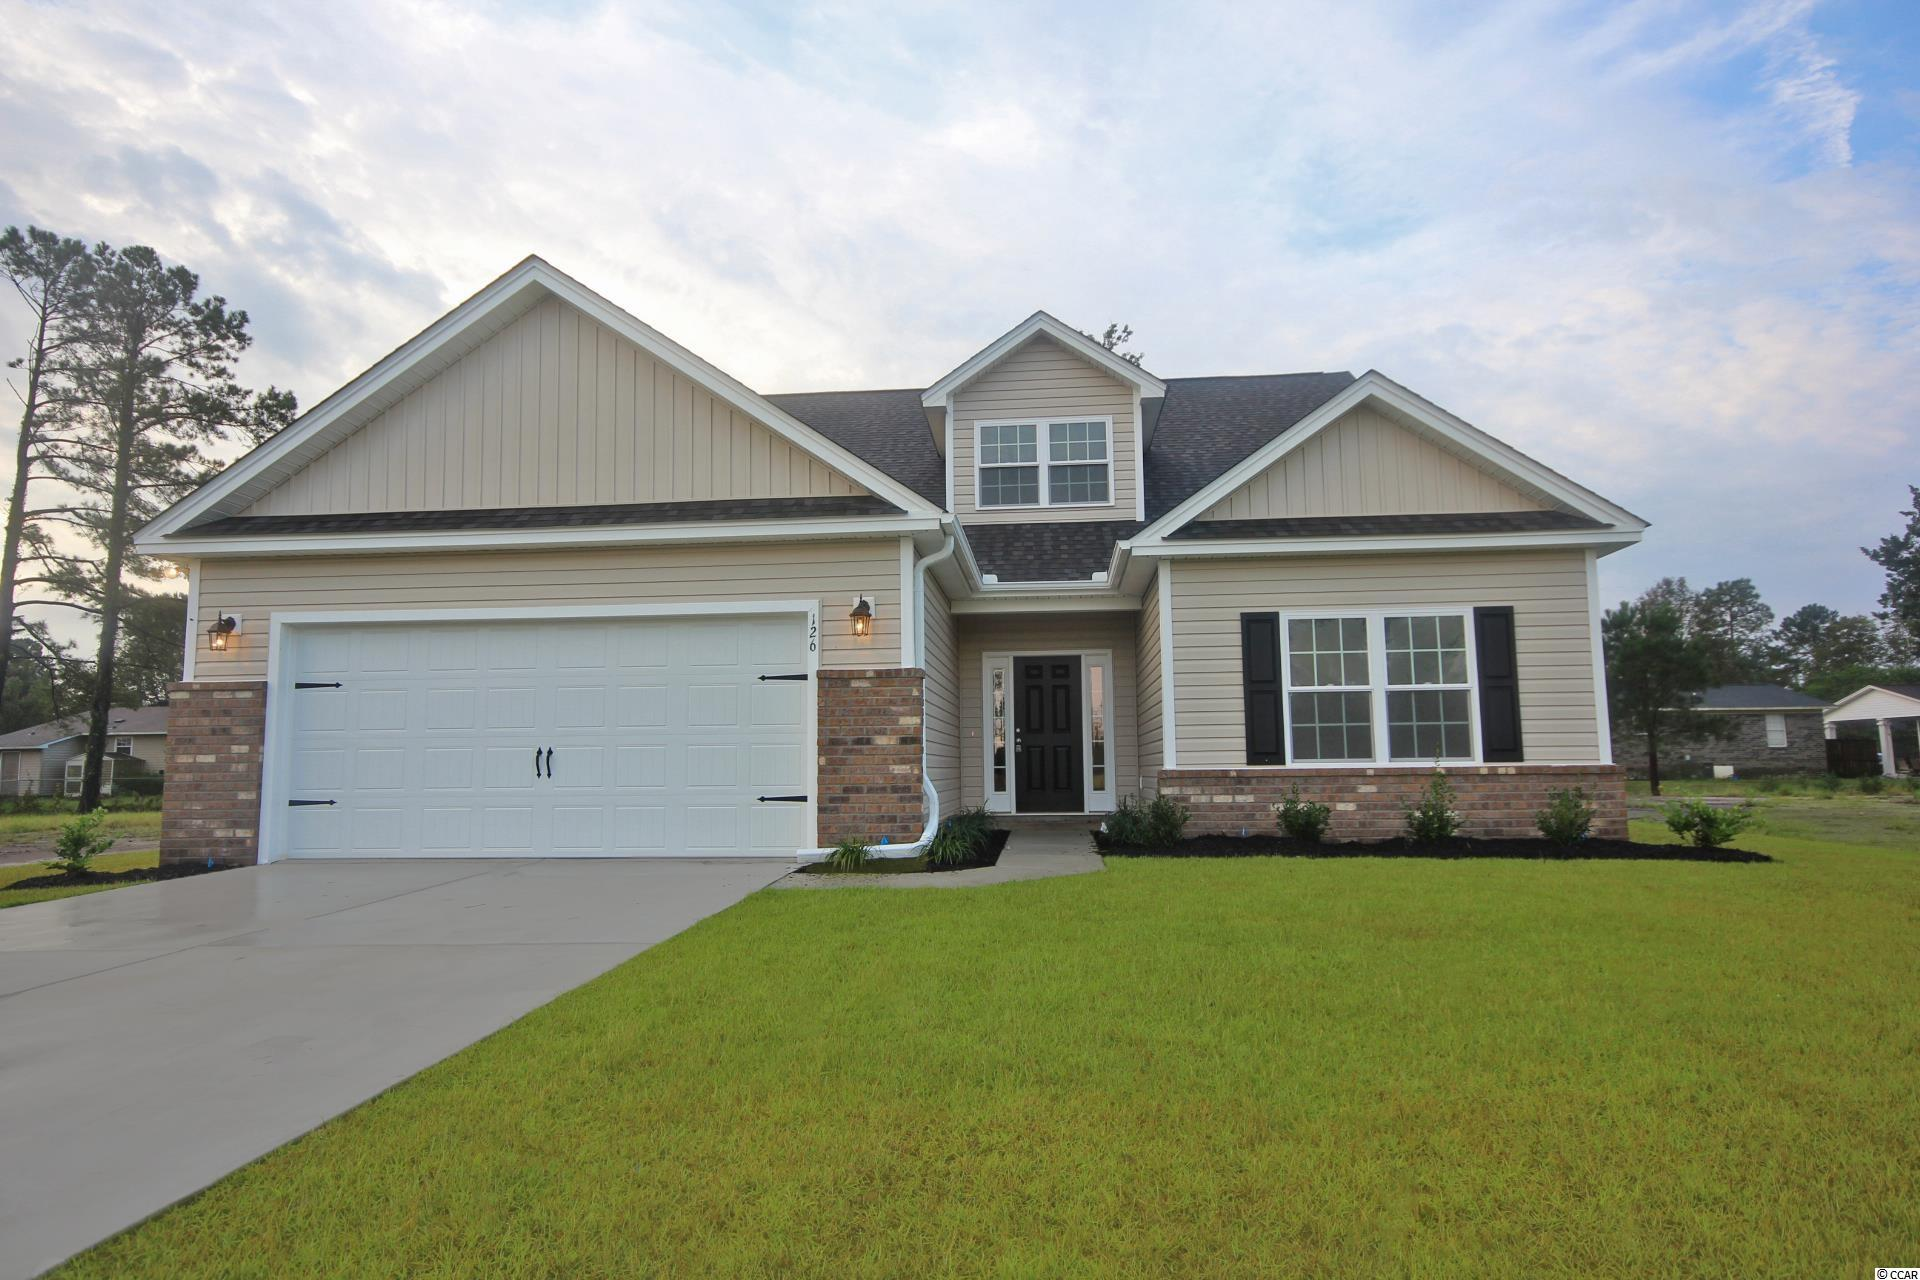 This NEW Abaco model has it all! 3 Bedroom 2 Bathroom with and a 2 Car Garage. at 1625 +/- This Open concept home with a modern design Sits on a spacious lot. The floor plan features lots of windows and 9ft. ceilings With vaults allowing natural light to flow in. The living and dining rooms are adjacent to the kitchen which makes entertaining easy and effortless. This Kitchen includes Quartz countertops, Benton white painted cabinets, and stainless appliances. Come see all the insightful features designed with you and your lifestyle in mind including a split bedroom layout. Pictures are of a similar home and are for illustration purposes only. This is a To Be Built Home. Upgrades and Lot Premium Not Included in the Listing Price.